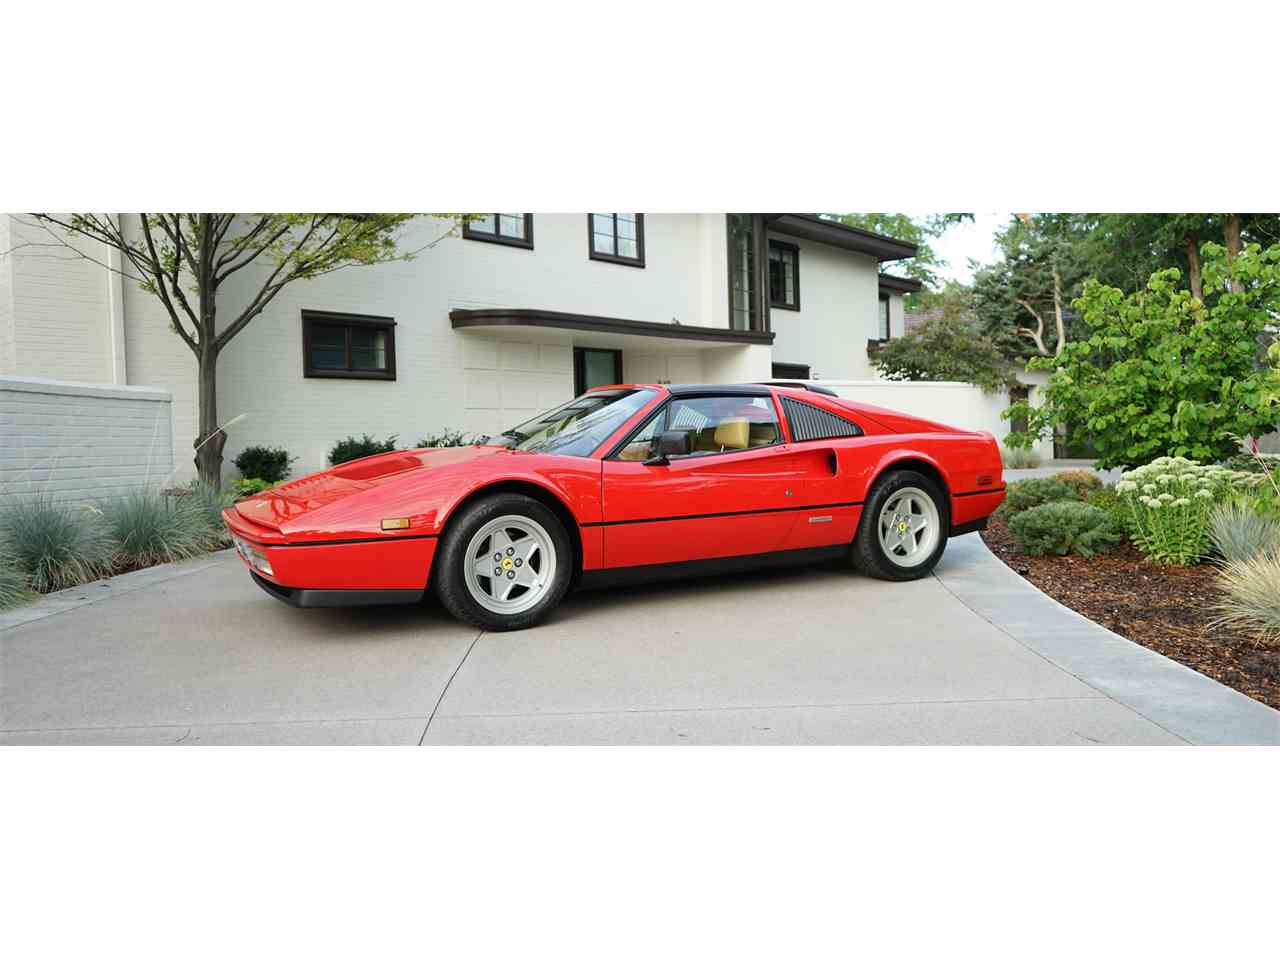 1987 Ferrari 328 GTS for Sale - CC-896113